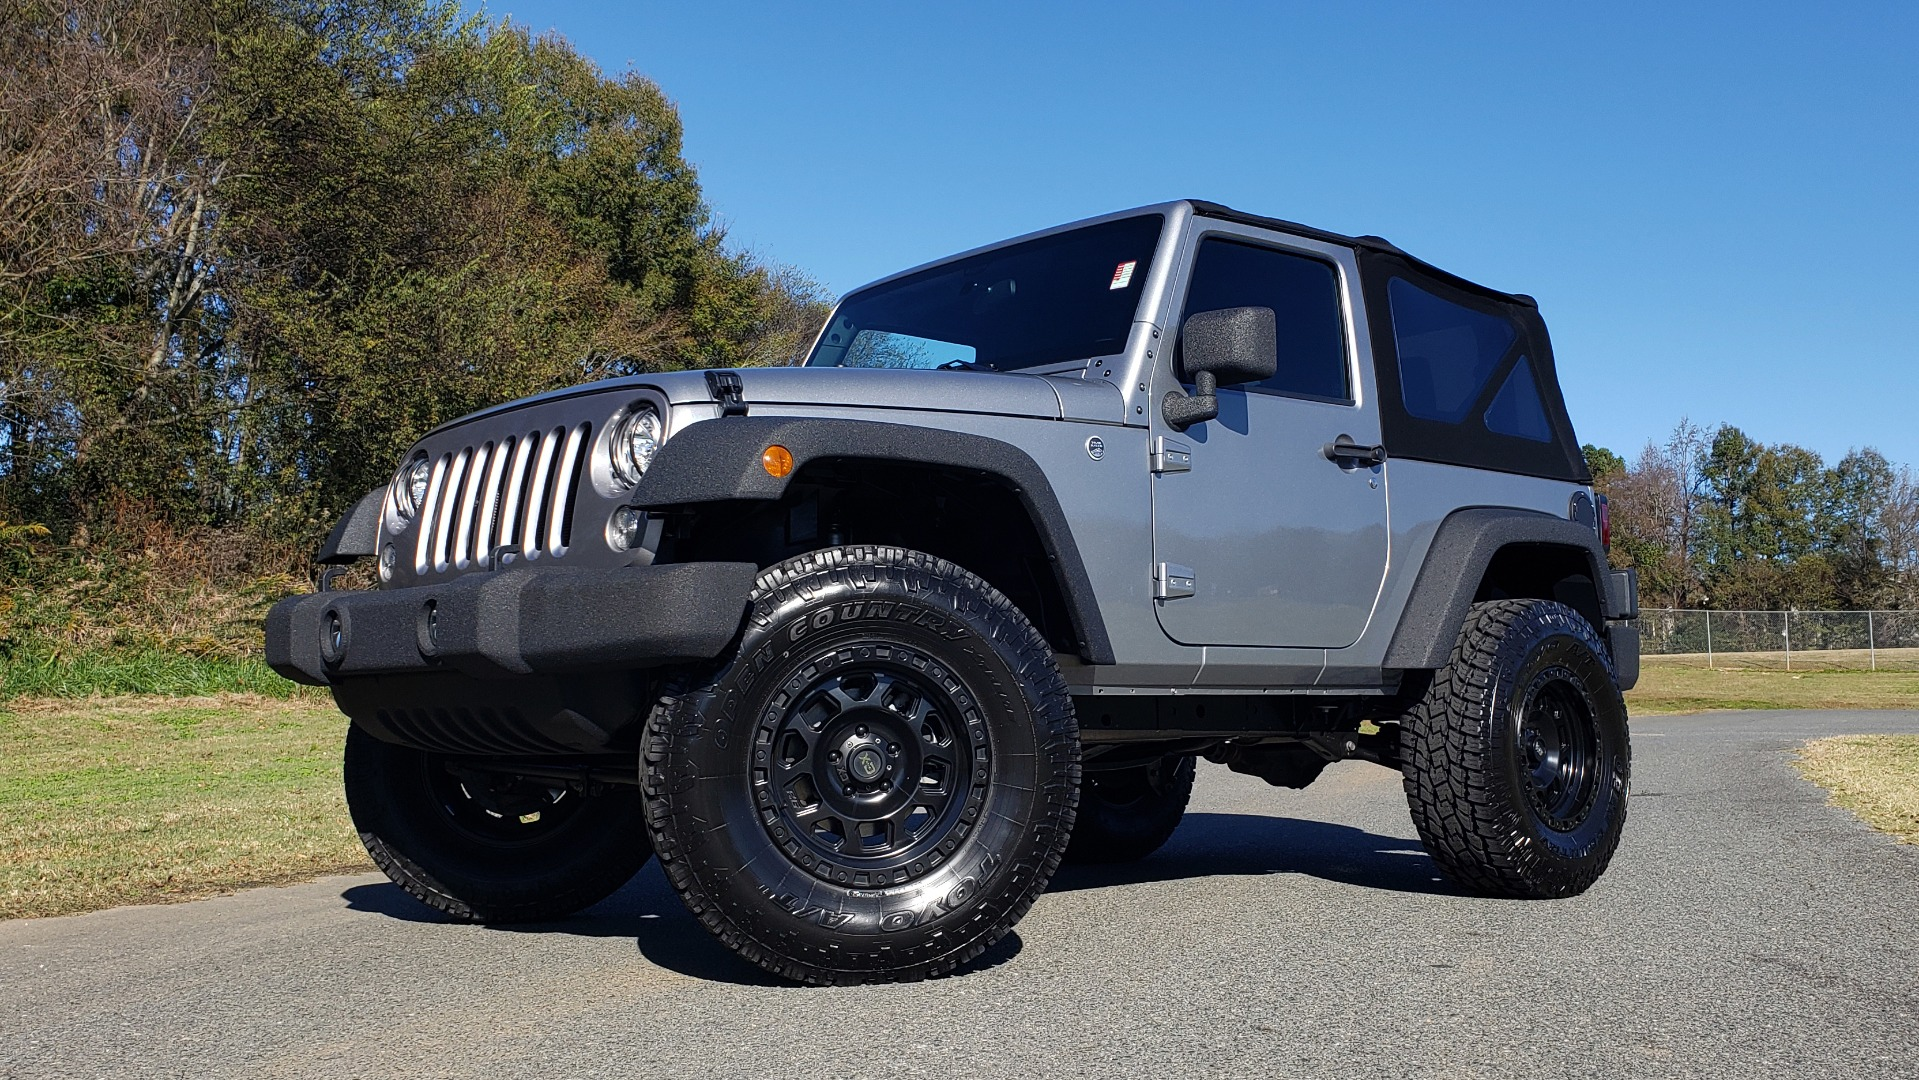 Used 2017 Jeep WRANGLER SPORT 4X4 / 3.6L V6 / MANUAL / AIR / LED LIGHTING / TOW GRP / AL for sale $31,900 at Formula Imports in Charlotte NC 28227 1